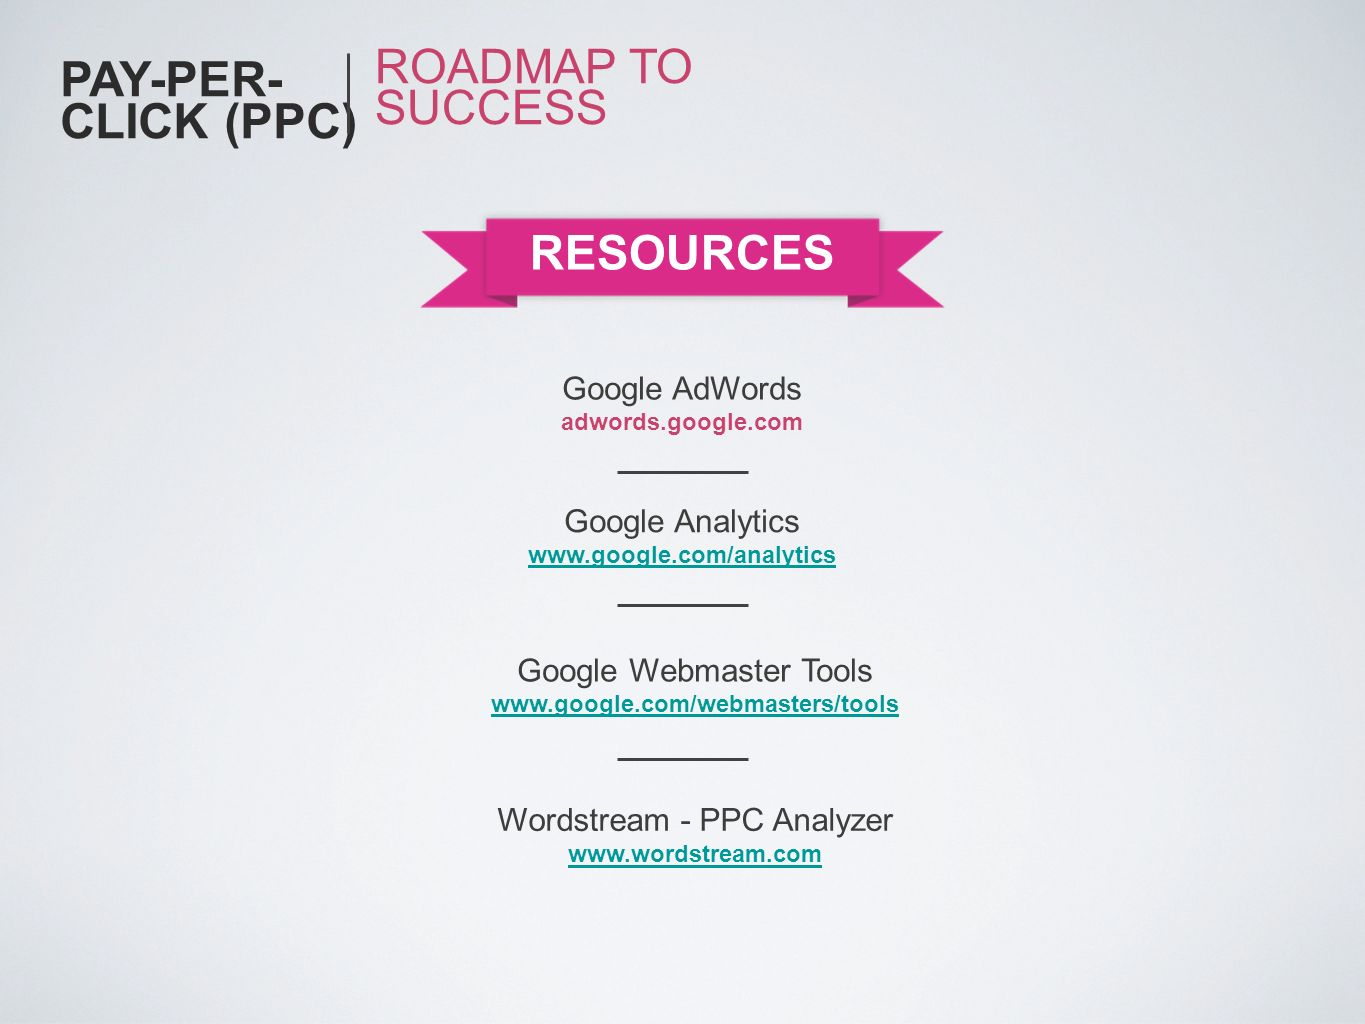 PAY-PER-CLICK (PPC) ROADMAP TO SUCCESS RESOURCES Google AdWords